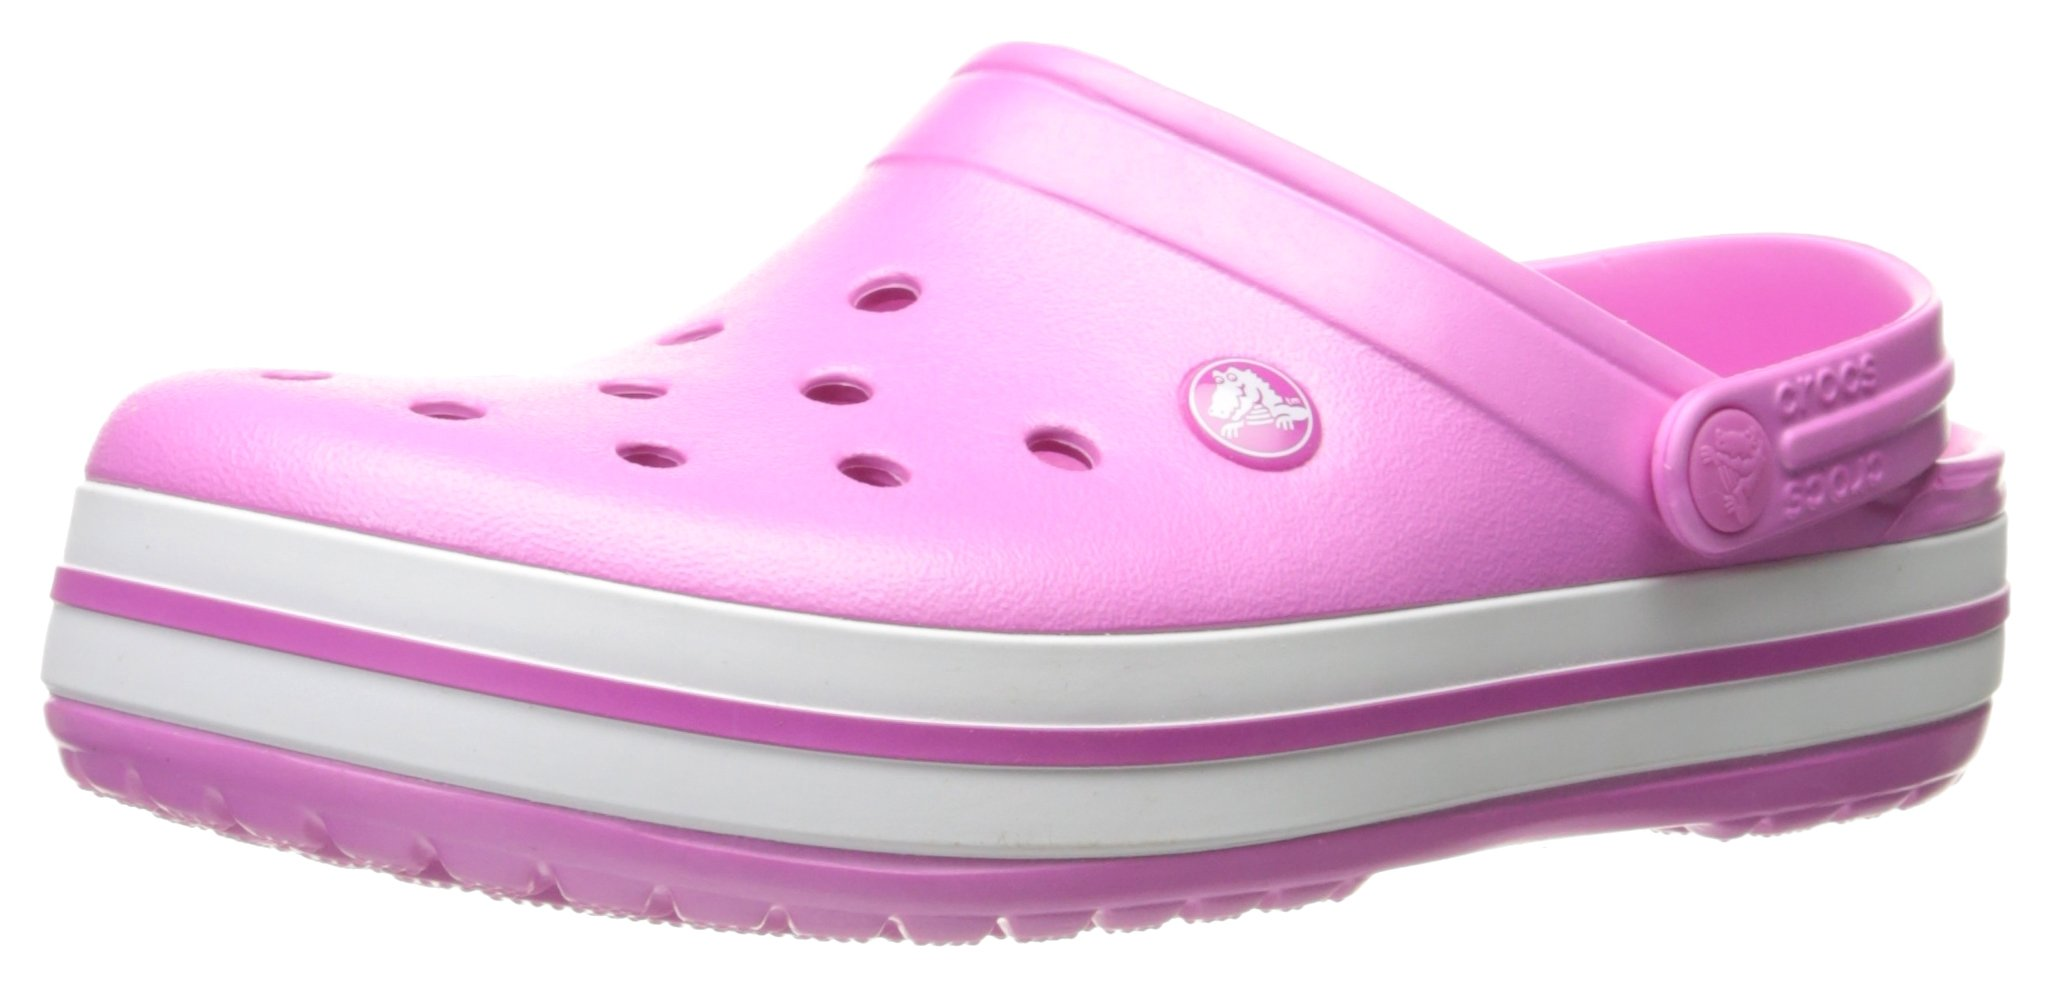 crocs Unisex Crocband Clog, Party Pink, 6 US Men / 8 US Women